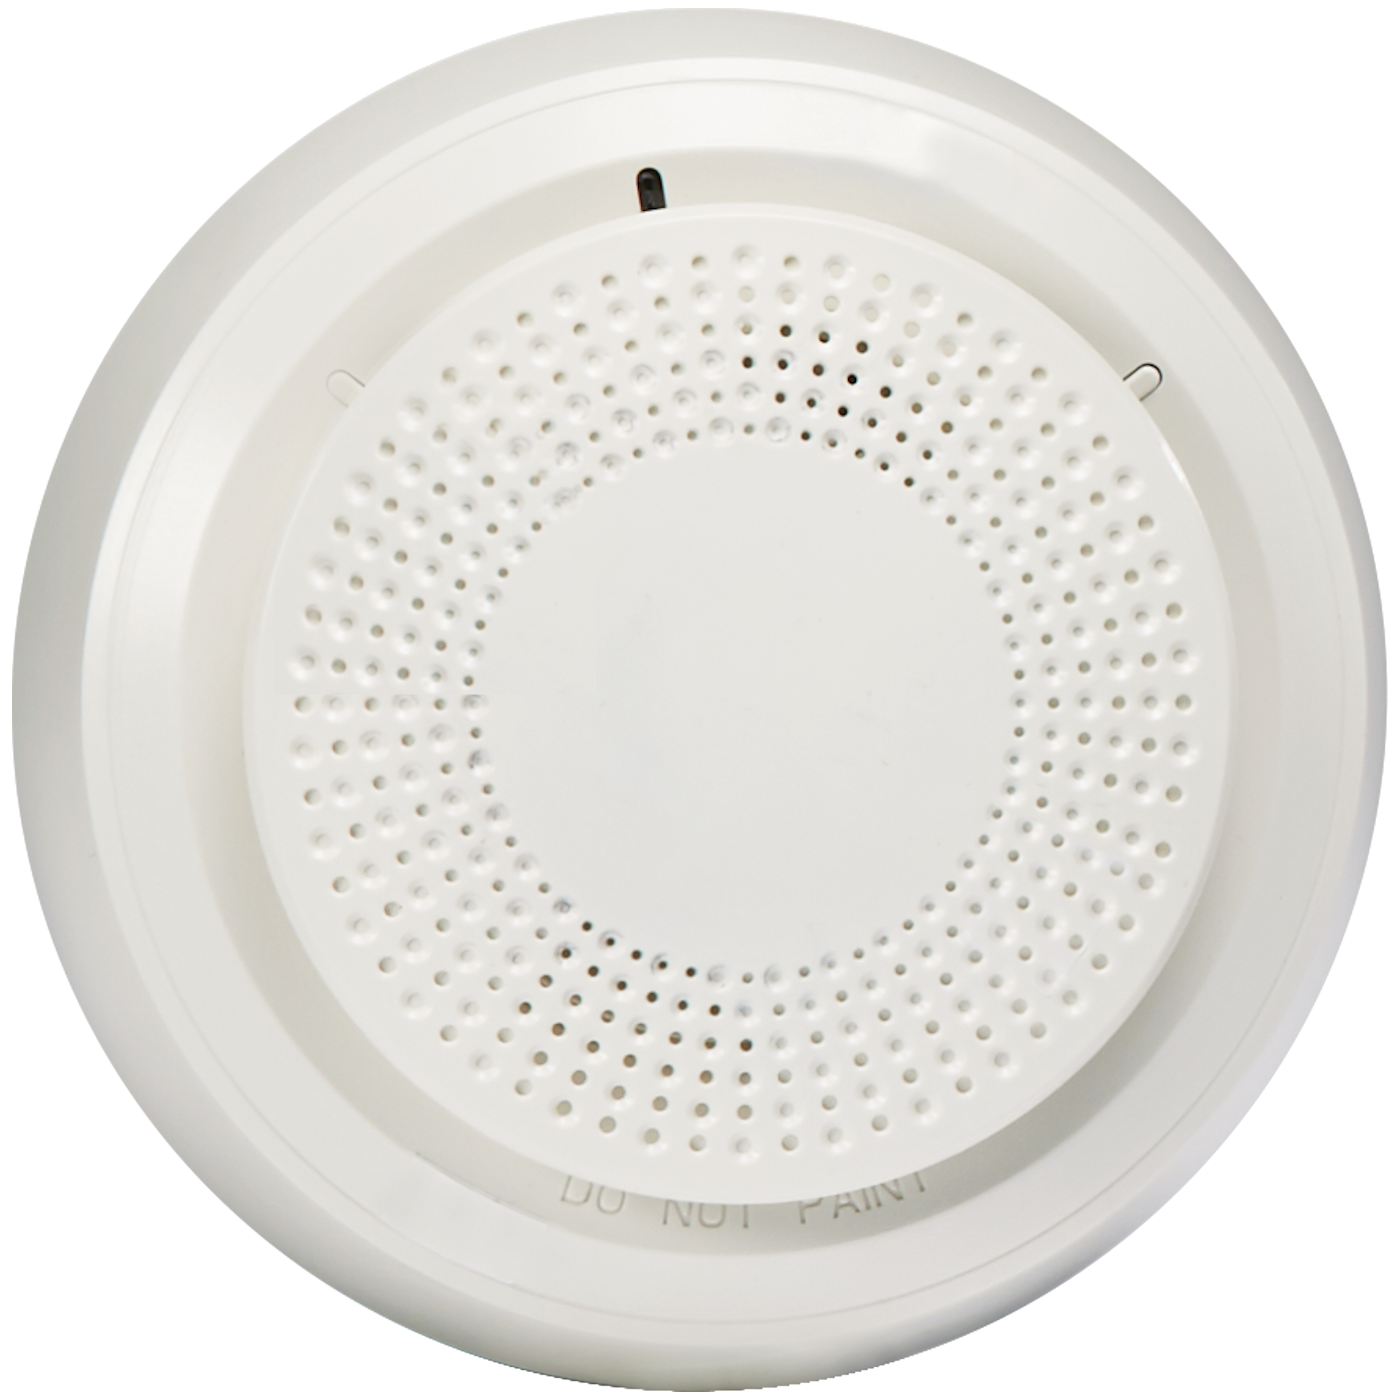 honeywell sixsmoke wireless smoke detector for lyric controller. Black Bedroom Furniture Sets. Home Design Ideas